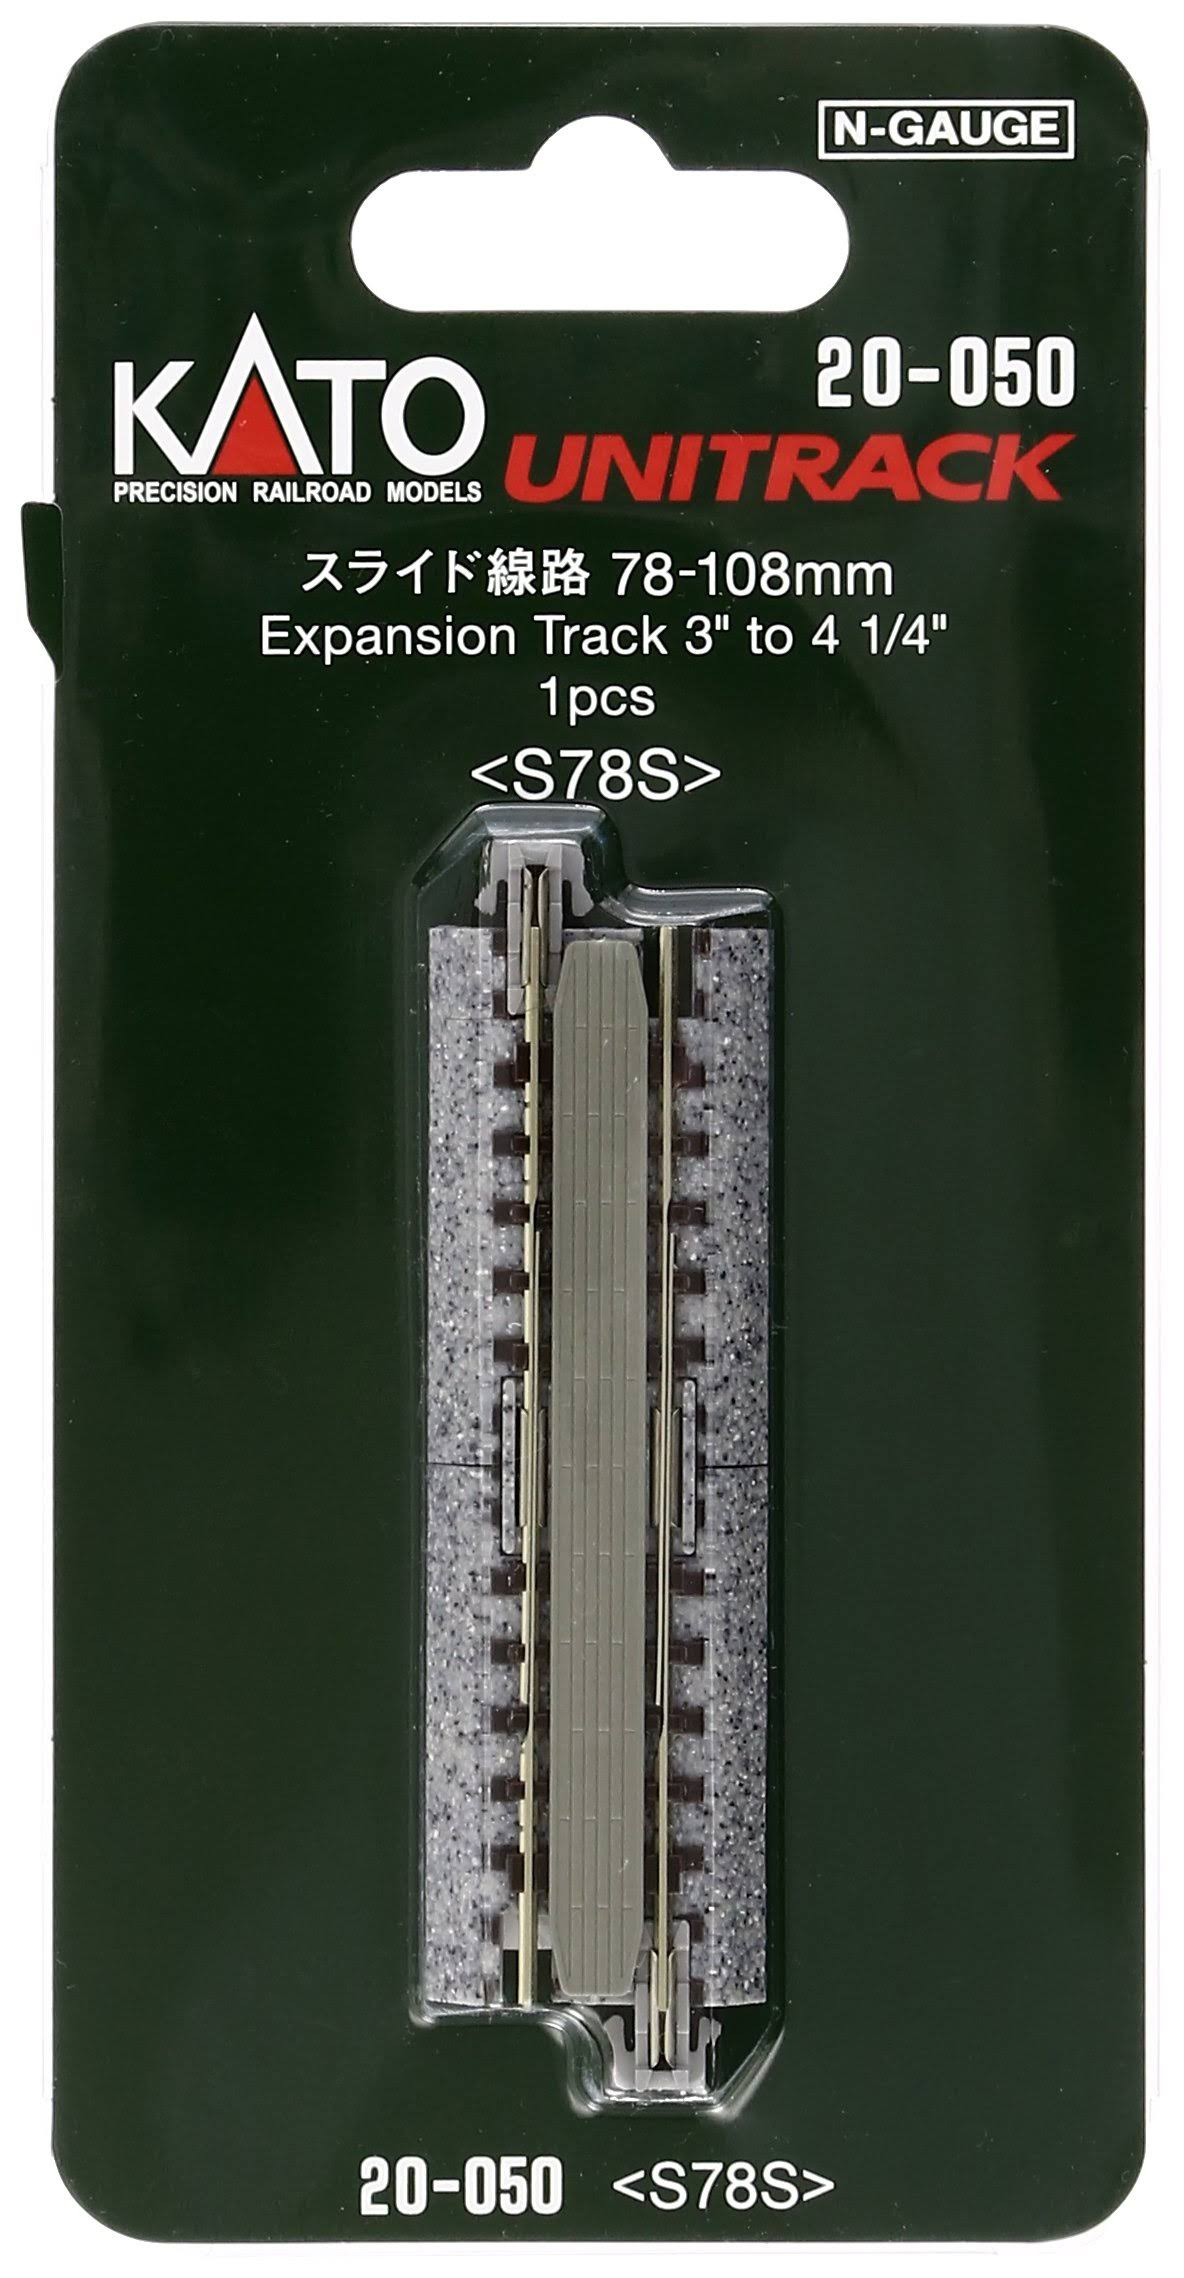 Kato 20-050 Expansion Track - S78 N scale, 78mm-108mm